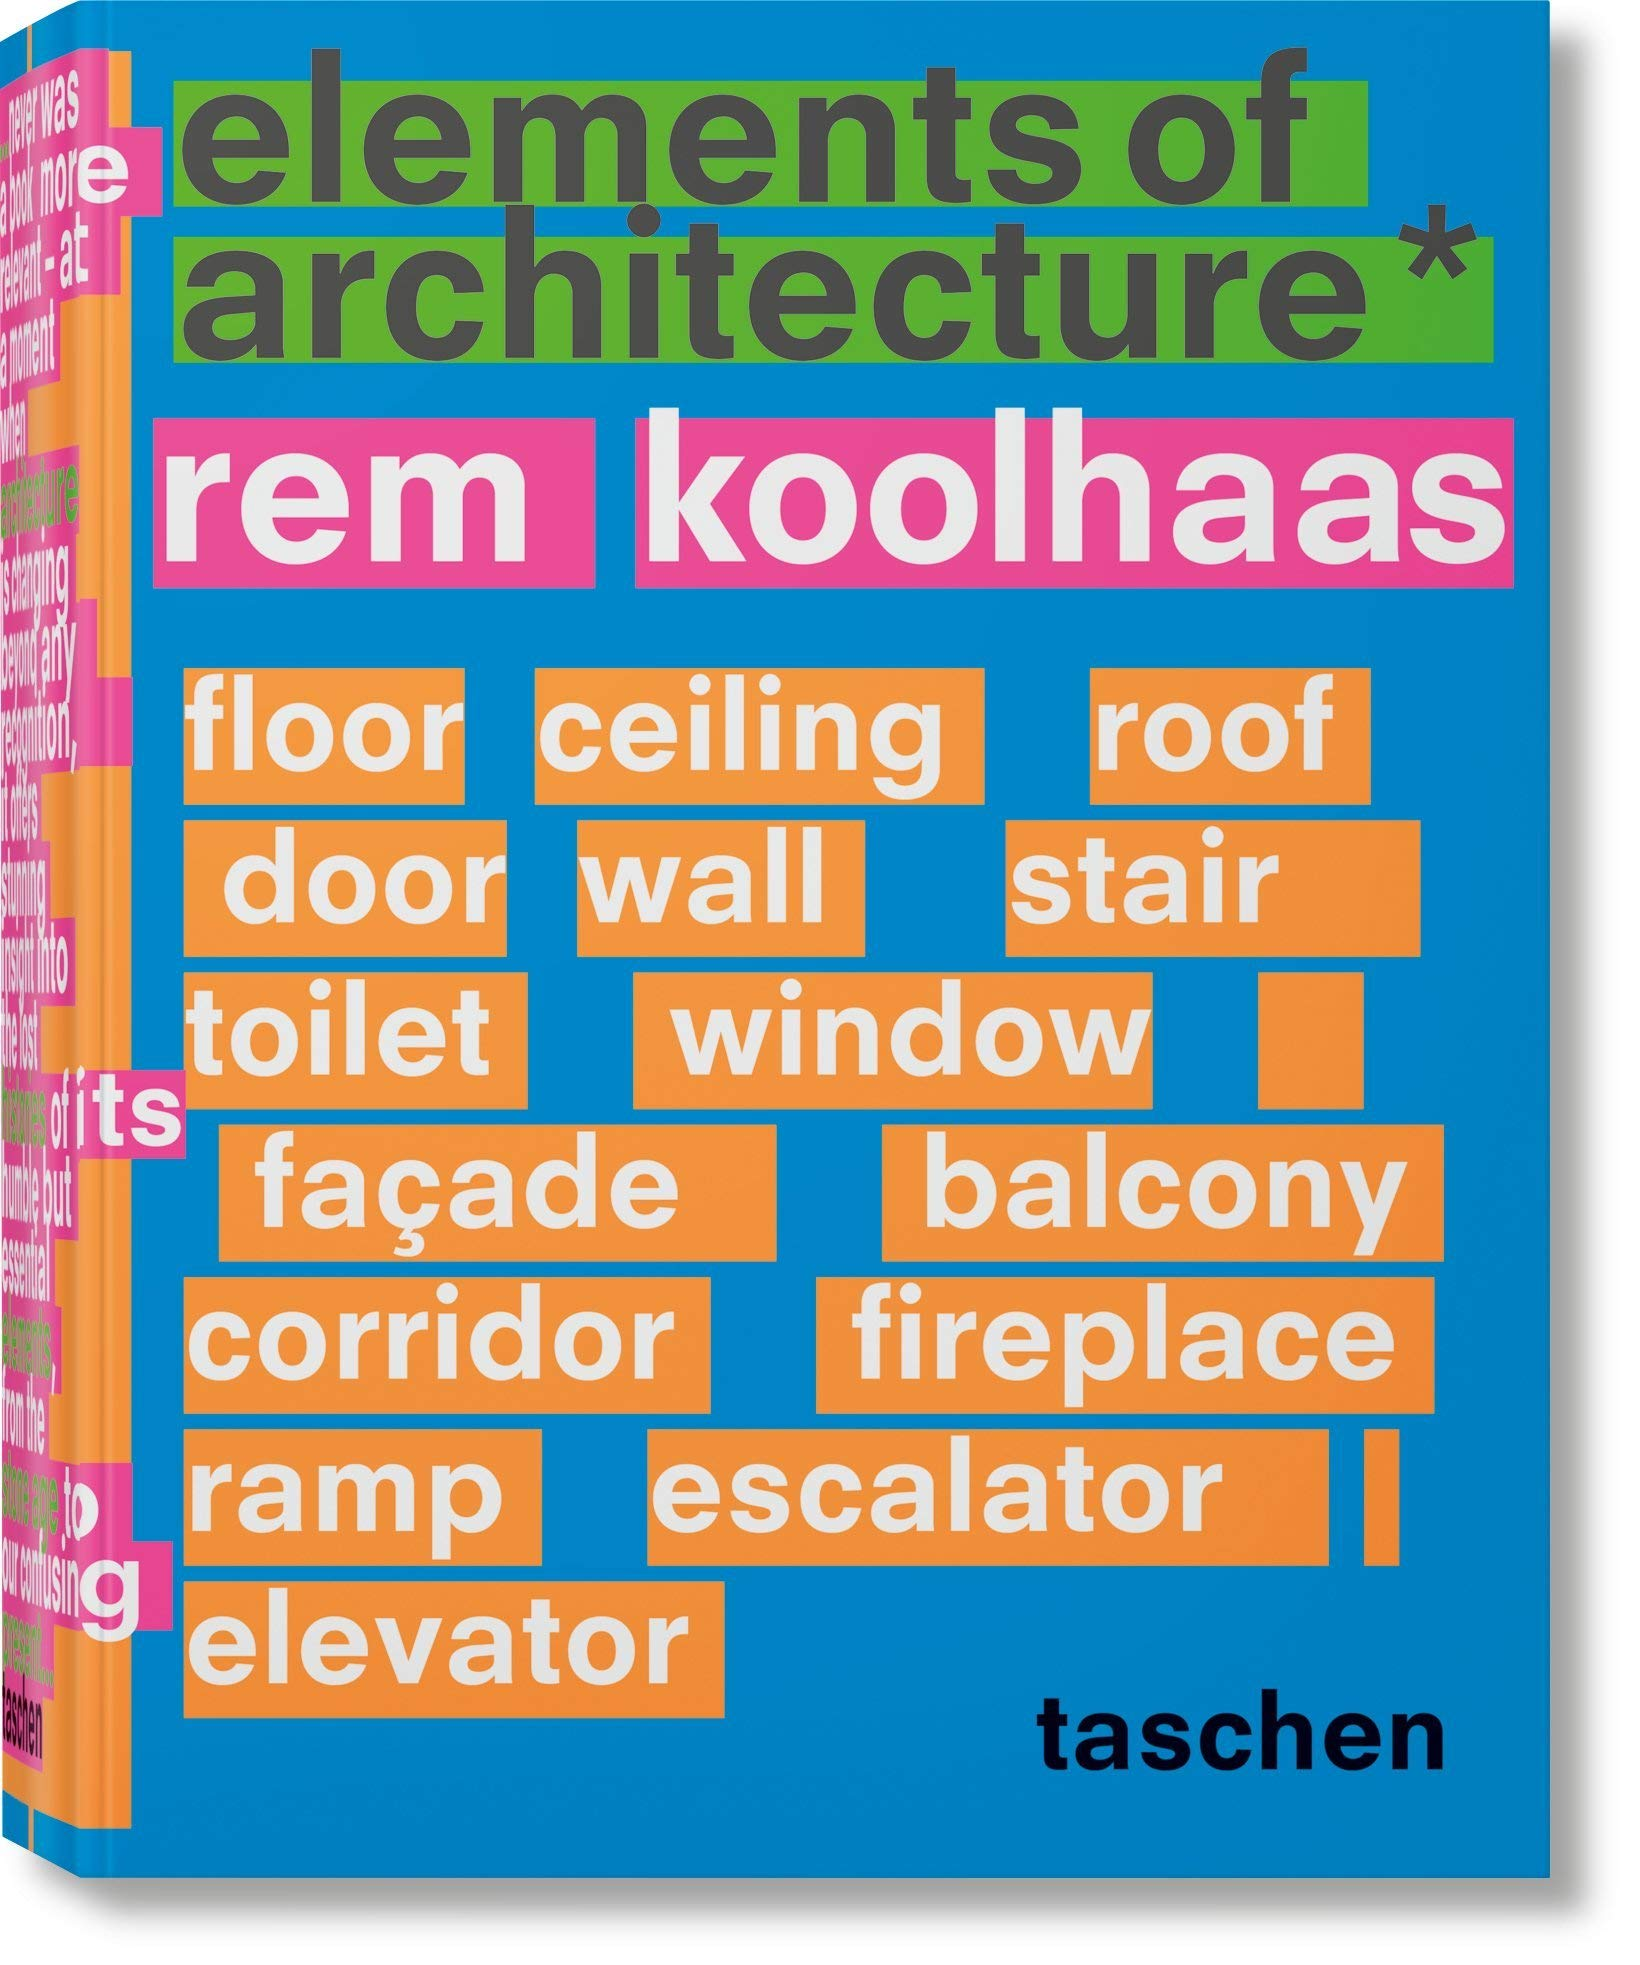 Rem Koolhaas. Elements of Architecture (Varia) (Inglés) Tapa dura – 15 sep 2018 Irma Boom Taschen 3836556146 Commercial & Industrial